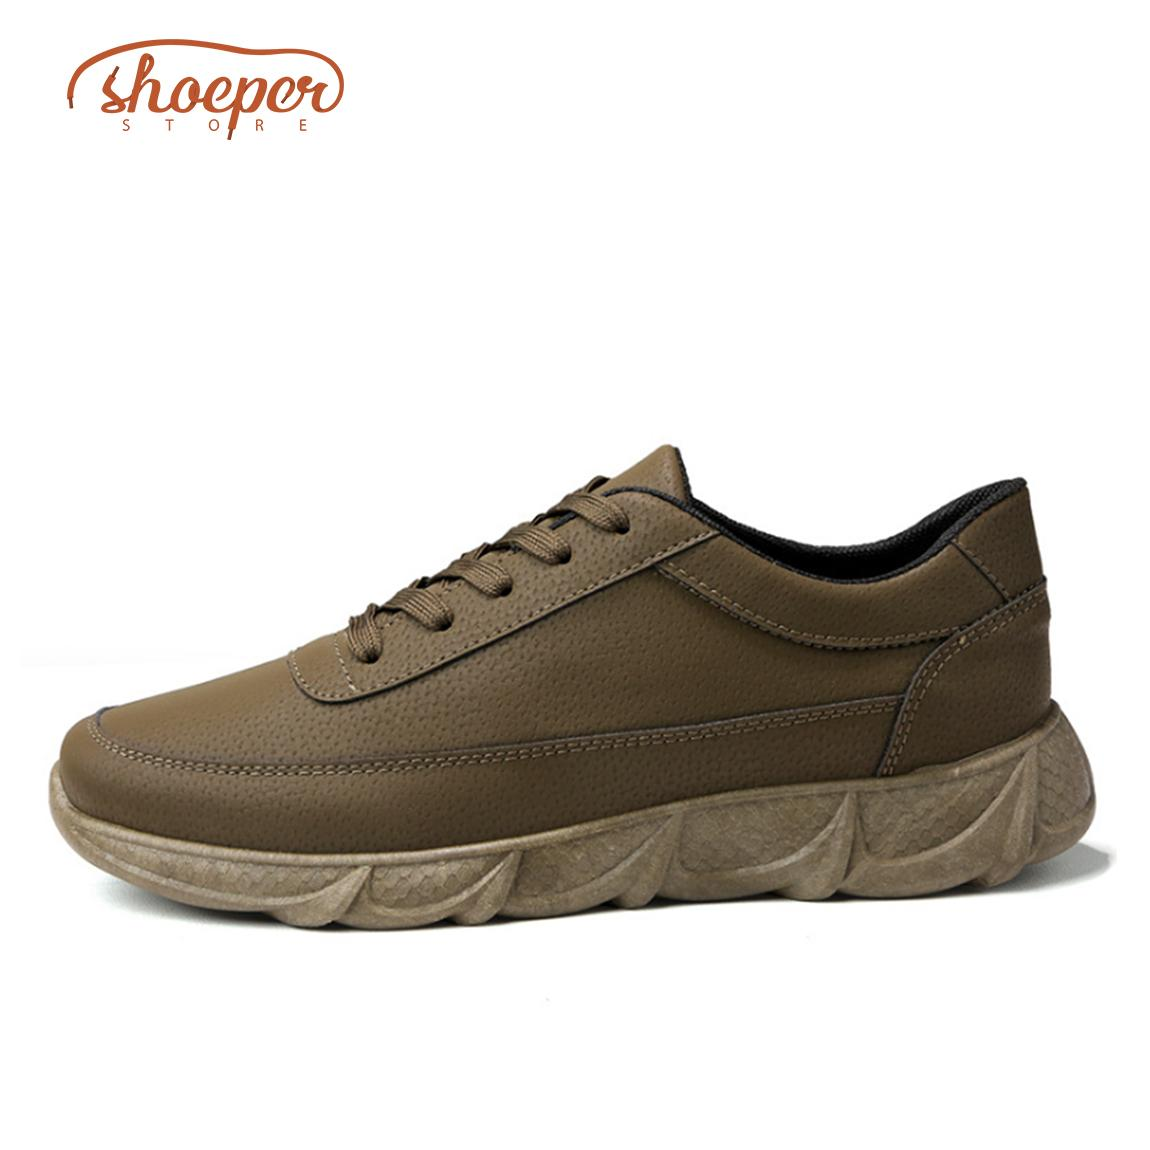 0cf182f2fbc Shoes for Men for sale - Mens Fashion Shoes Online Deals & Prices in ...